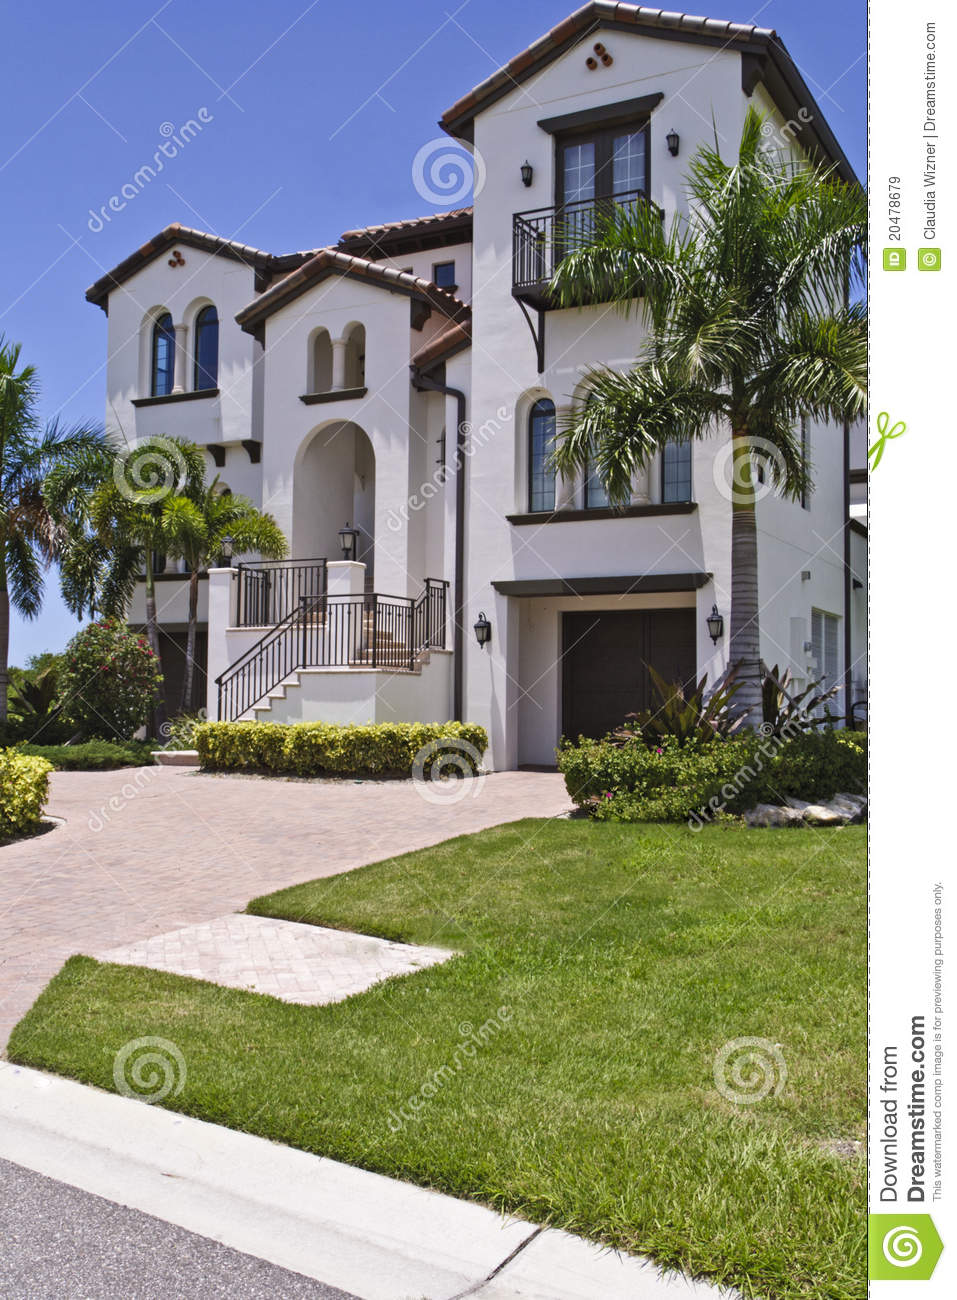 Luxurious spanish style home stock image image of for Spanish style homes for sale near me